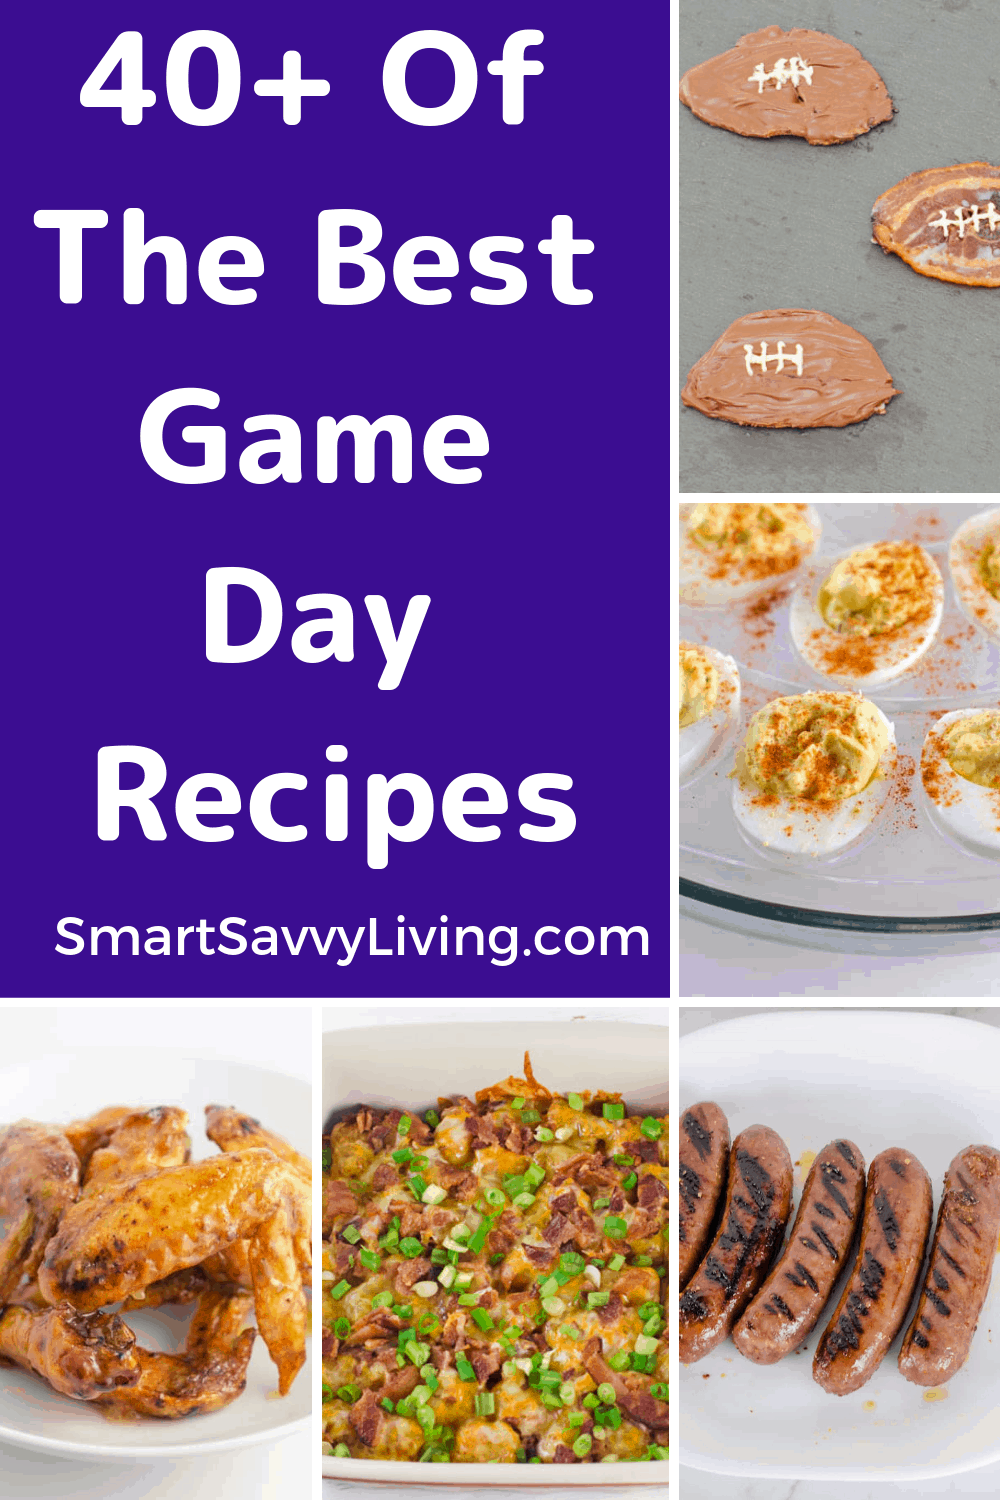 40+ Of The Best Game Day Recipes 1